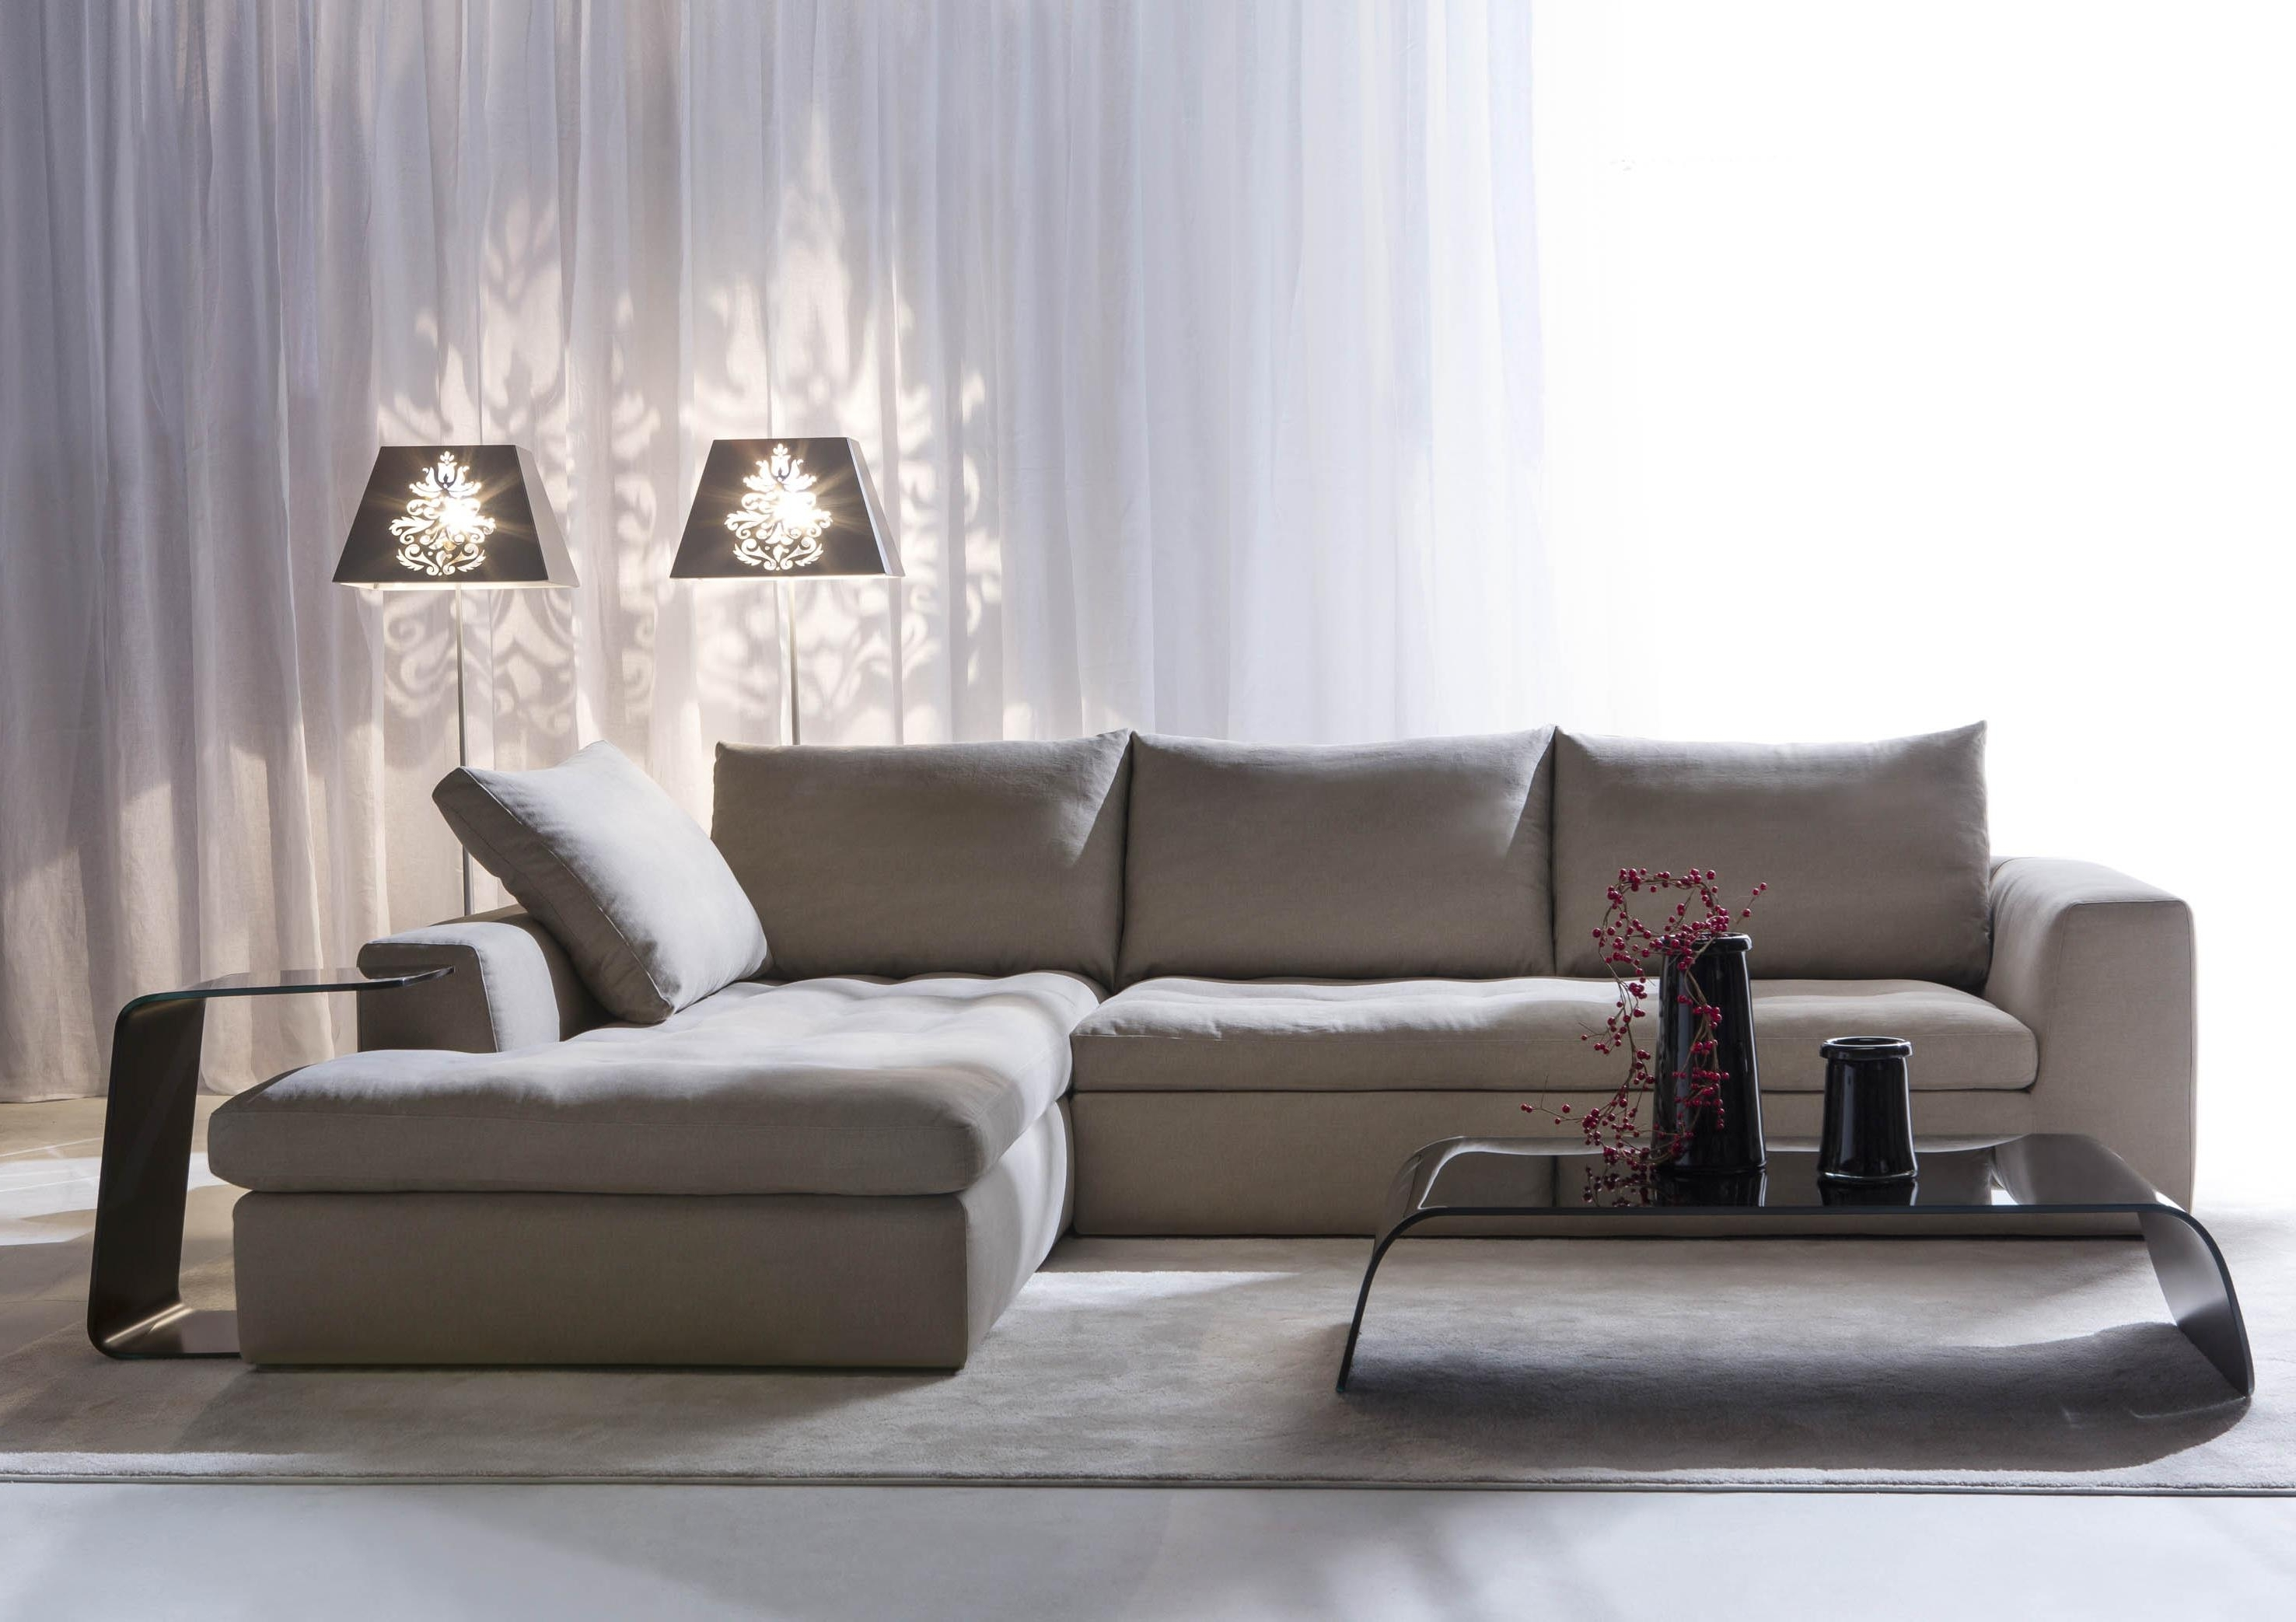 96X96 Sectional Sofas within Most Recent Sectional Sofa Design: Most High Class Wide Sectional Sofas Wide